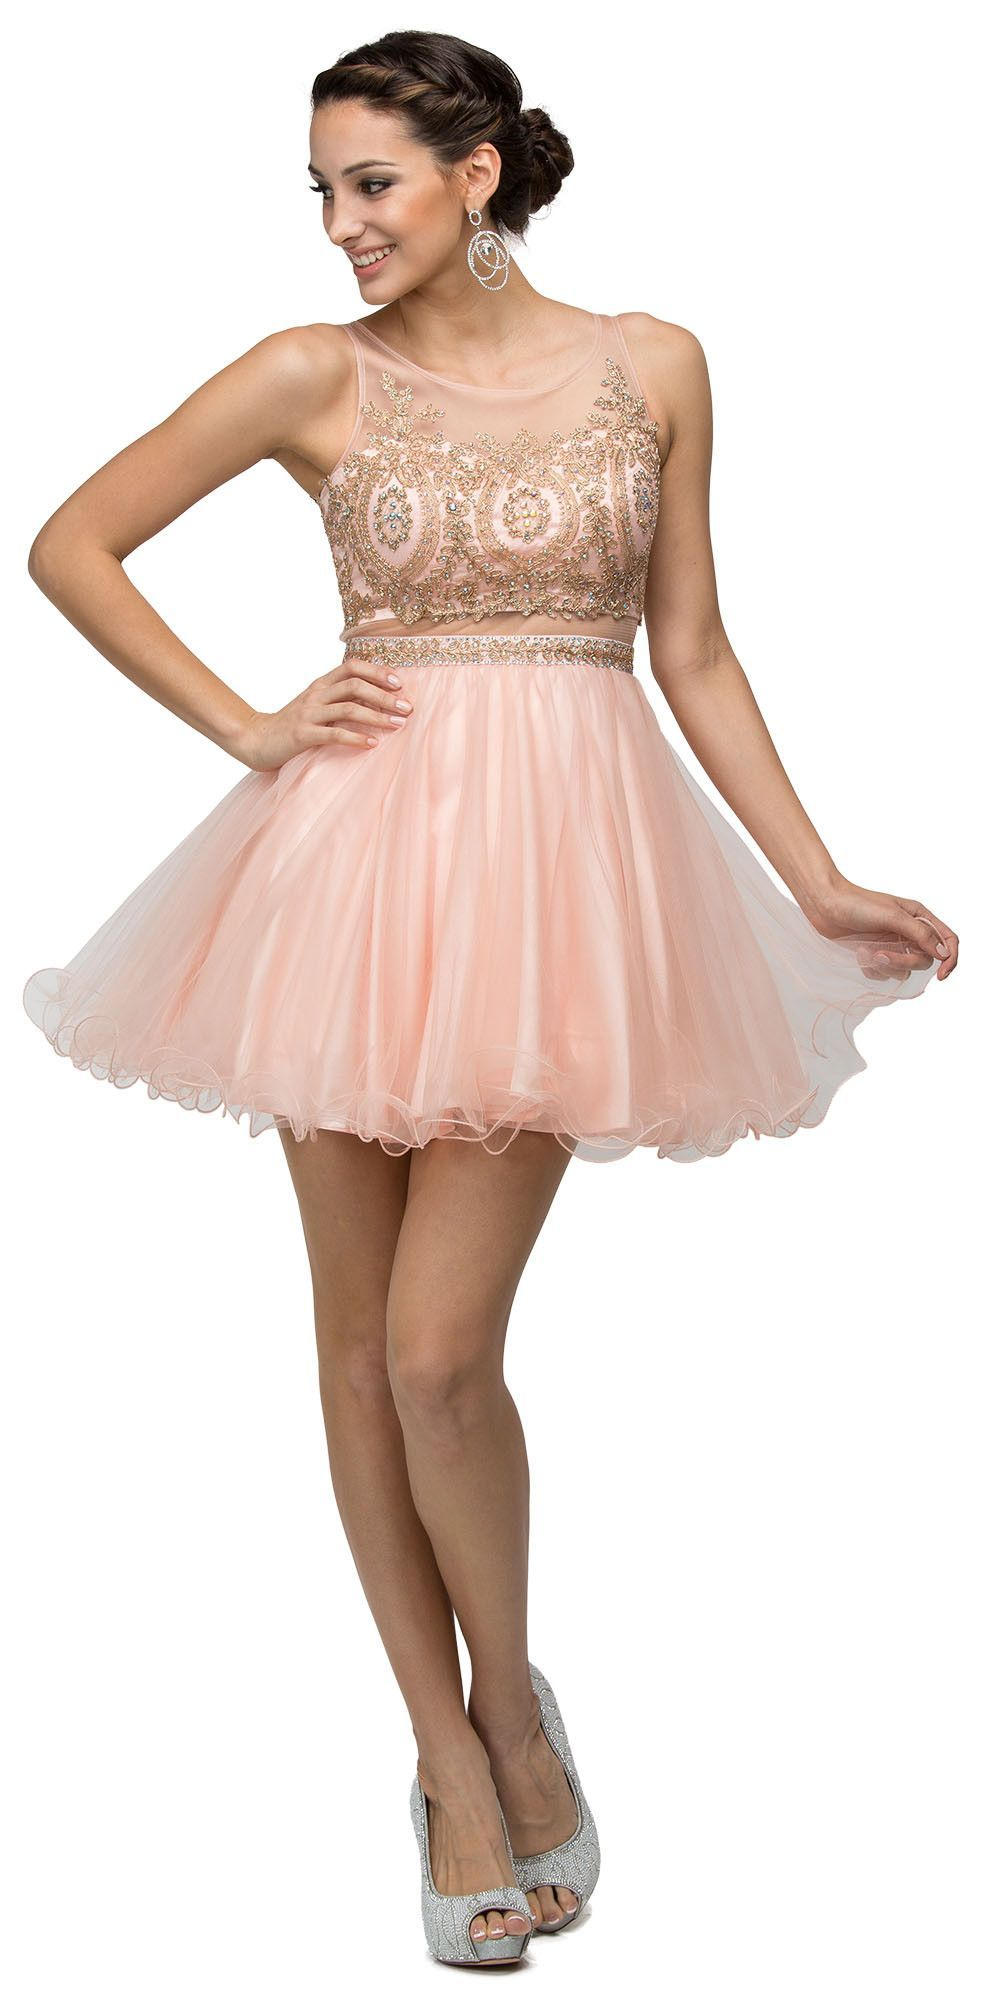 Illusion sweetheart homecoming dress red nude babydoll embroidery